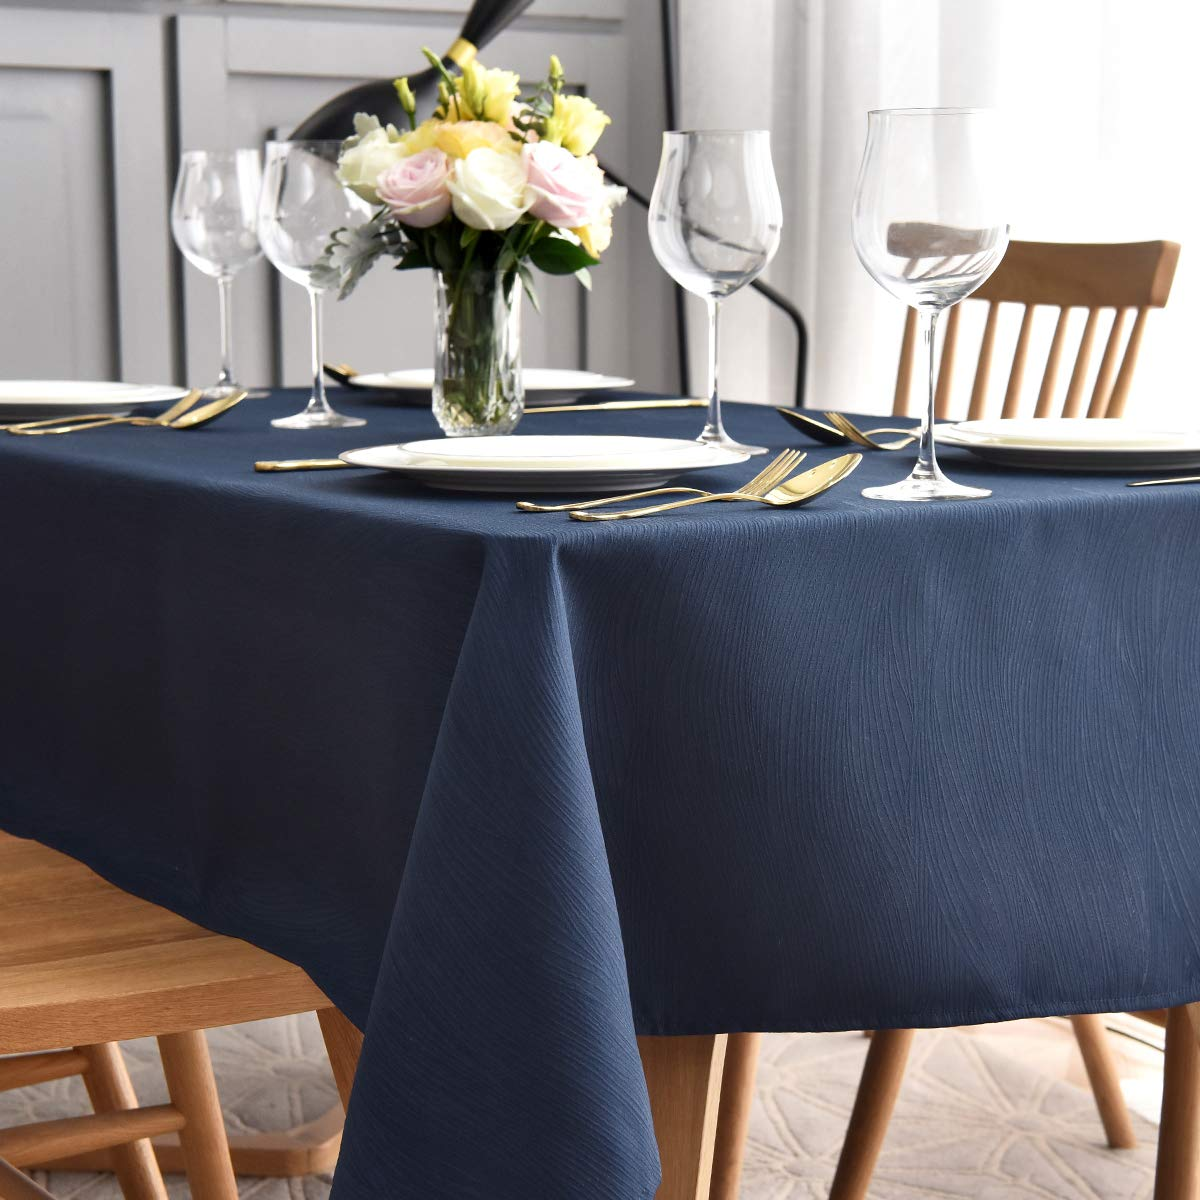 maxmill Jacquard Tablecloth Swirl Design Spillproof Wrinkle Free Oil Resistant Heavy Weight Soft Table Cloth Decorative Fabric Table Cover for Outdoor and Indoor Use Oblong 60 x 120 Inch Navy Blue